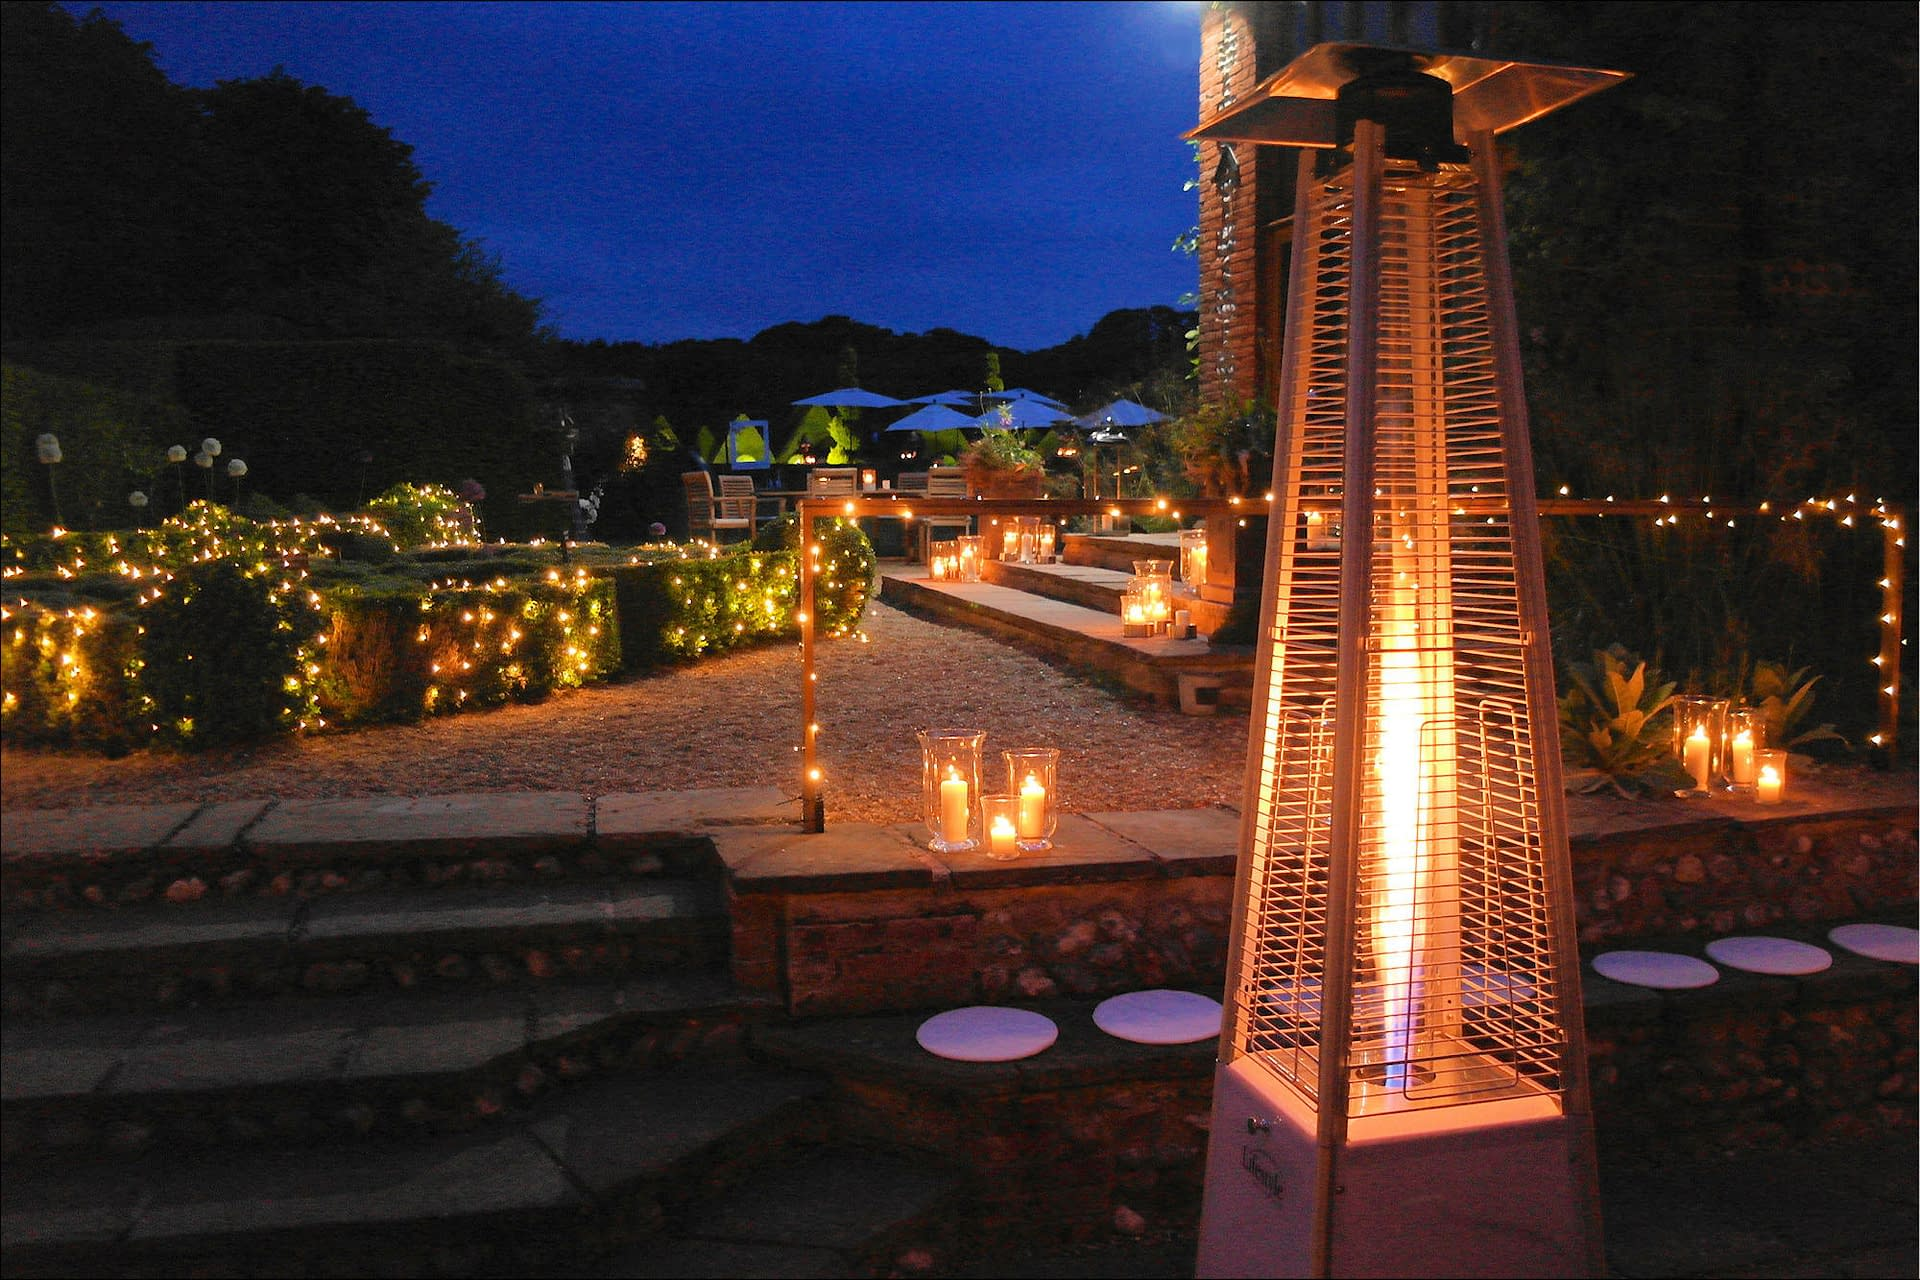 Fairy lights to dress the bushes plus storm lanterns, garden furniture and patio heaters at Chaucer Barn, a UK wedding venue